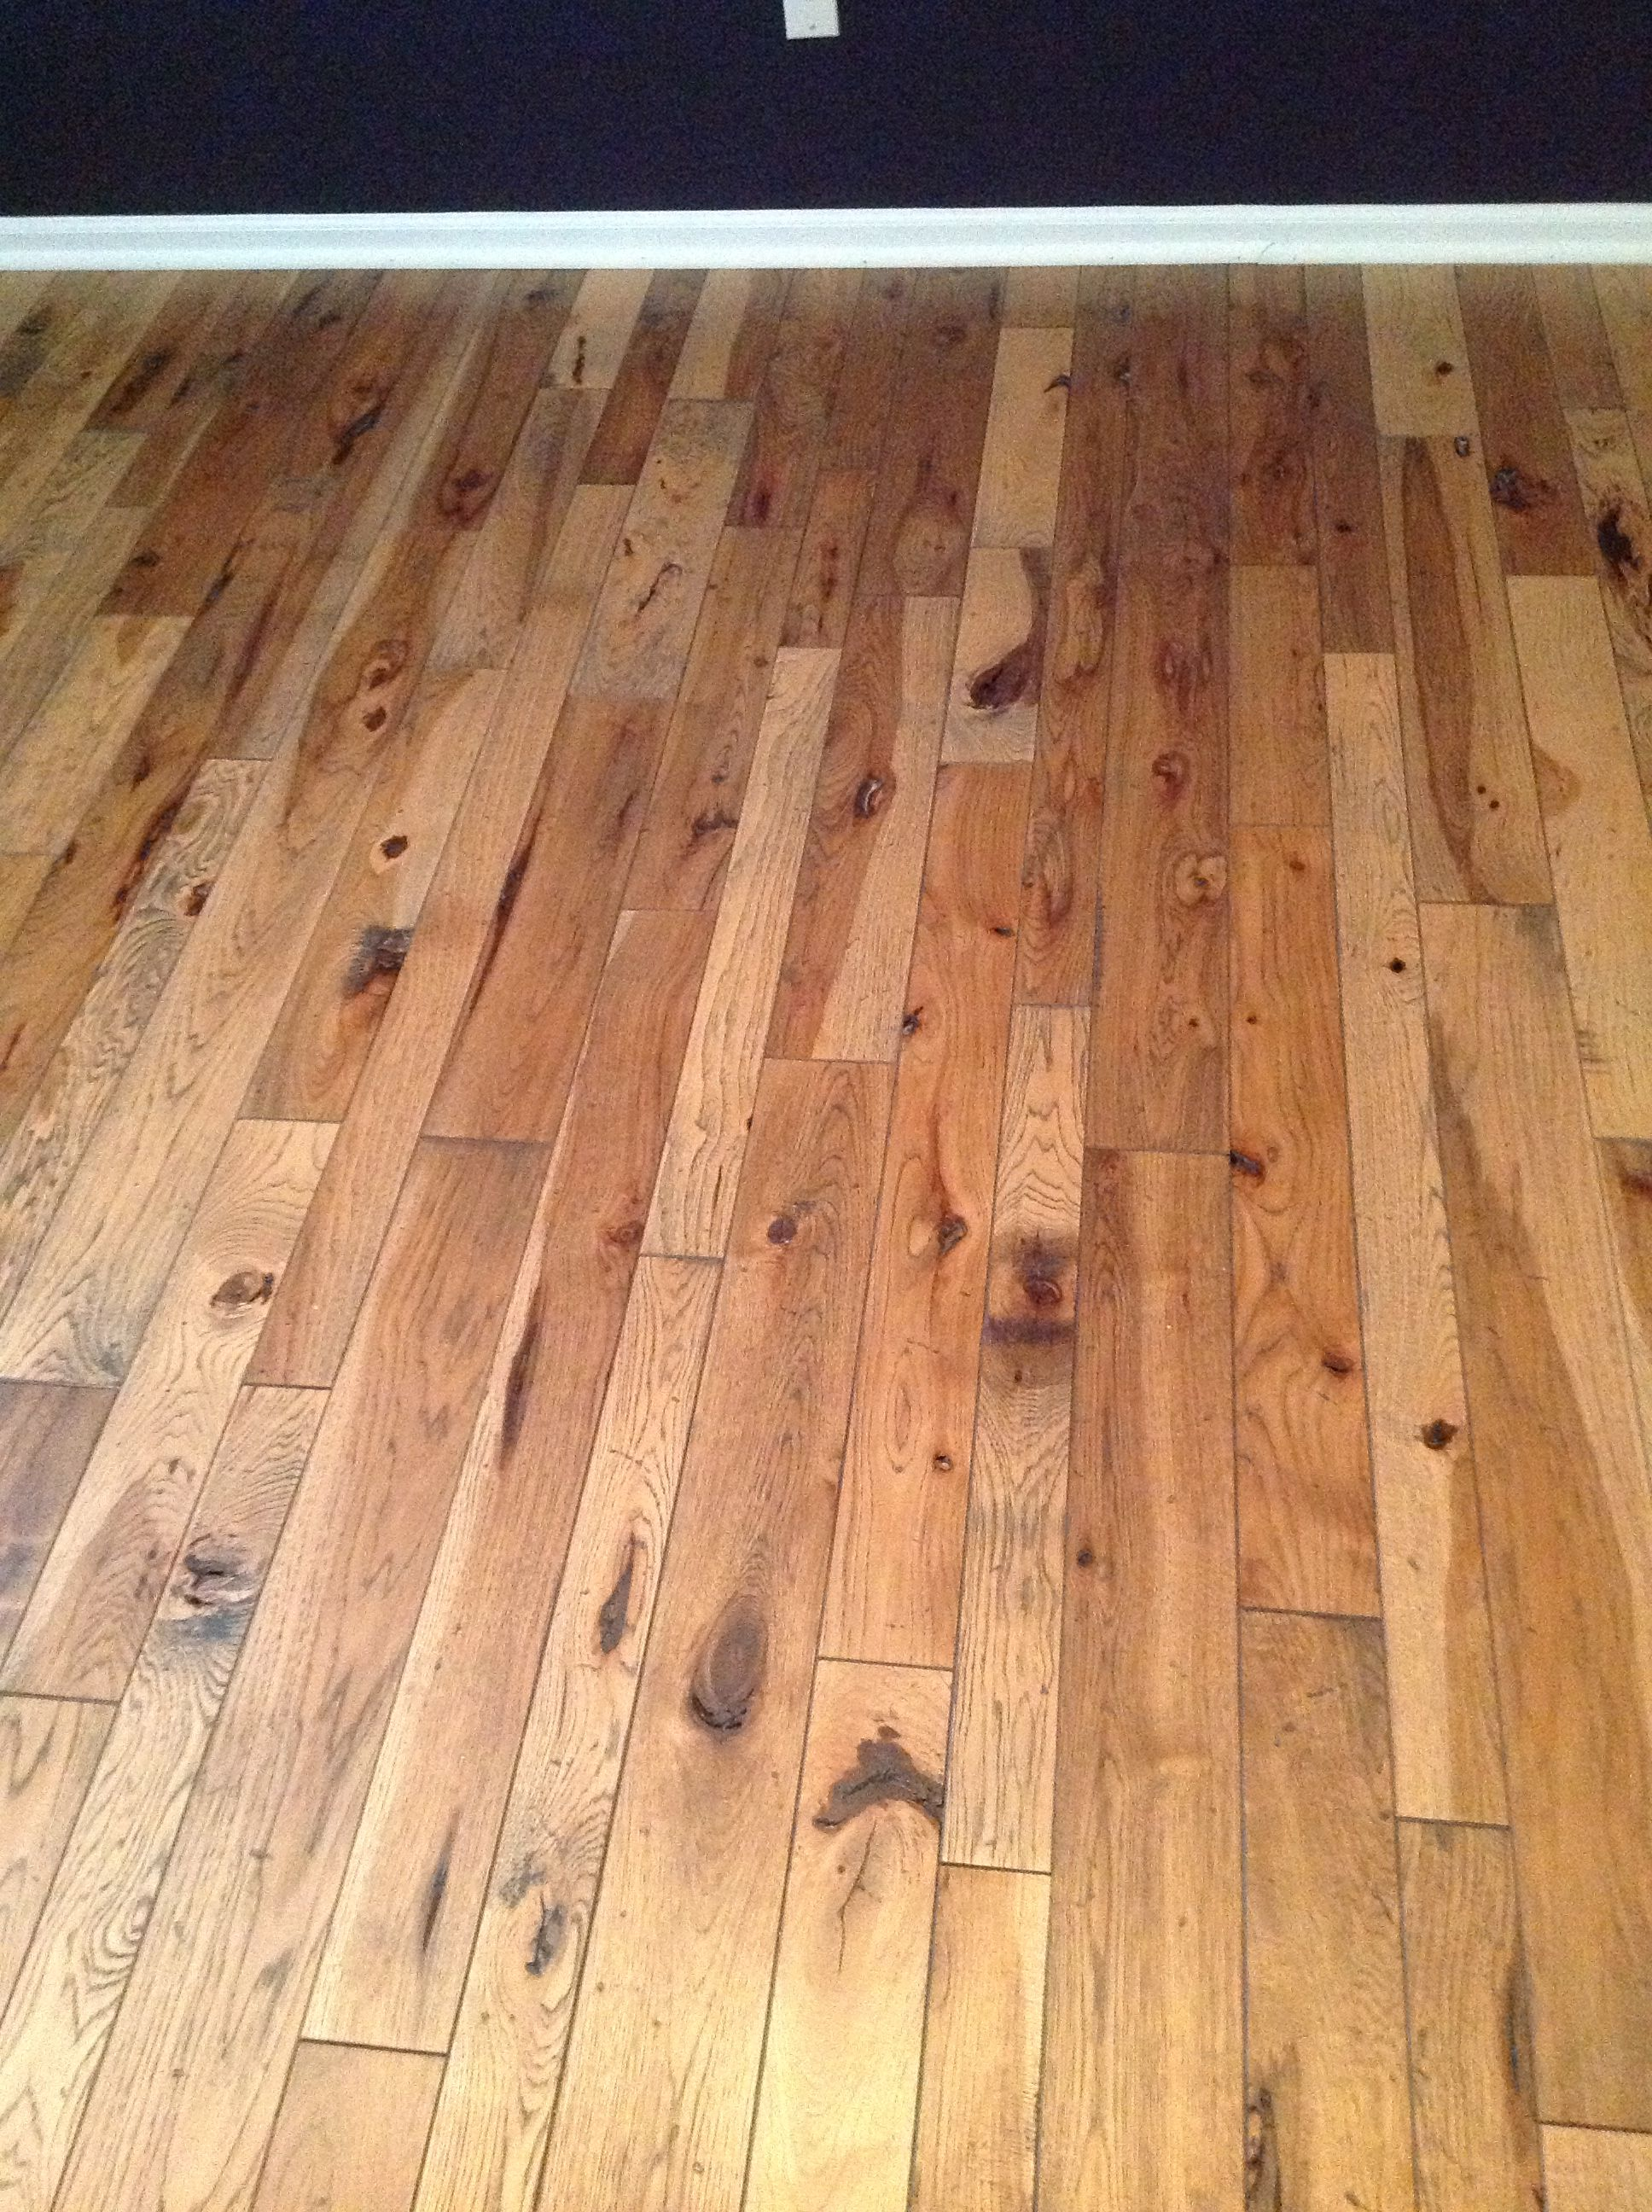 5 Inch Wide Rift Quarter Sawn 1 Common White Oak Floors White Oak Floors Wood Floors Wide Plank Oak Floors